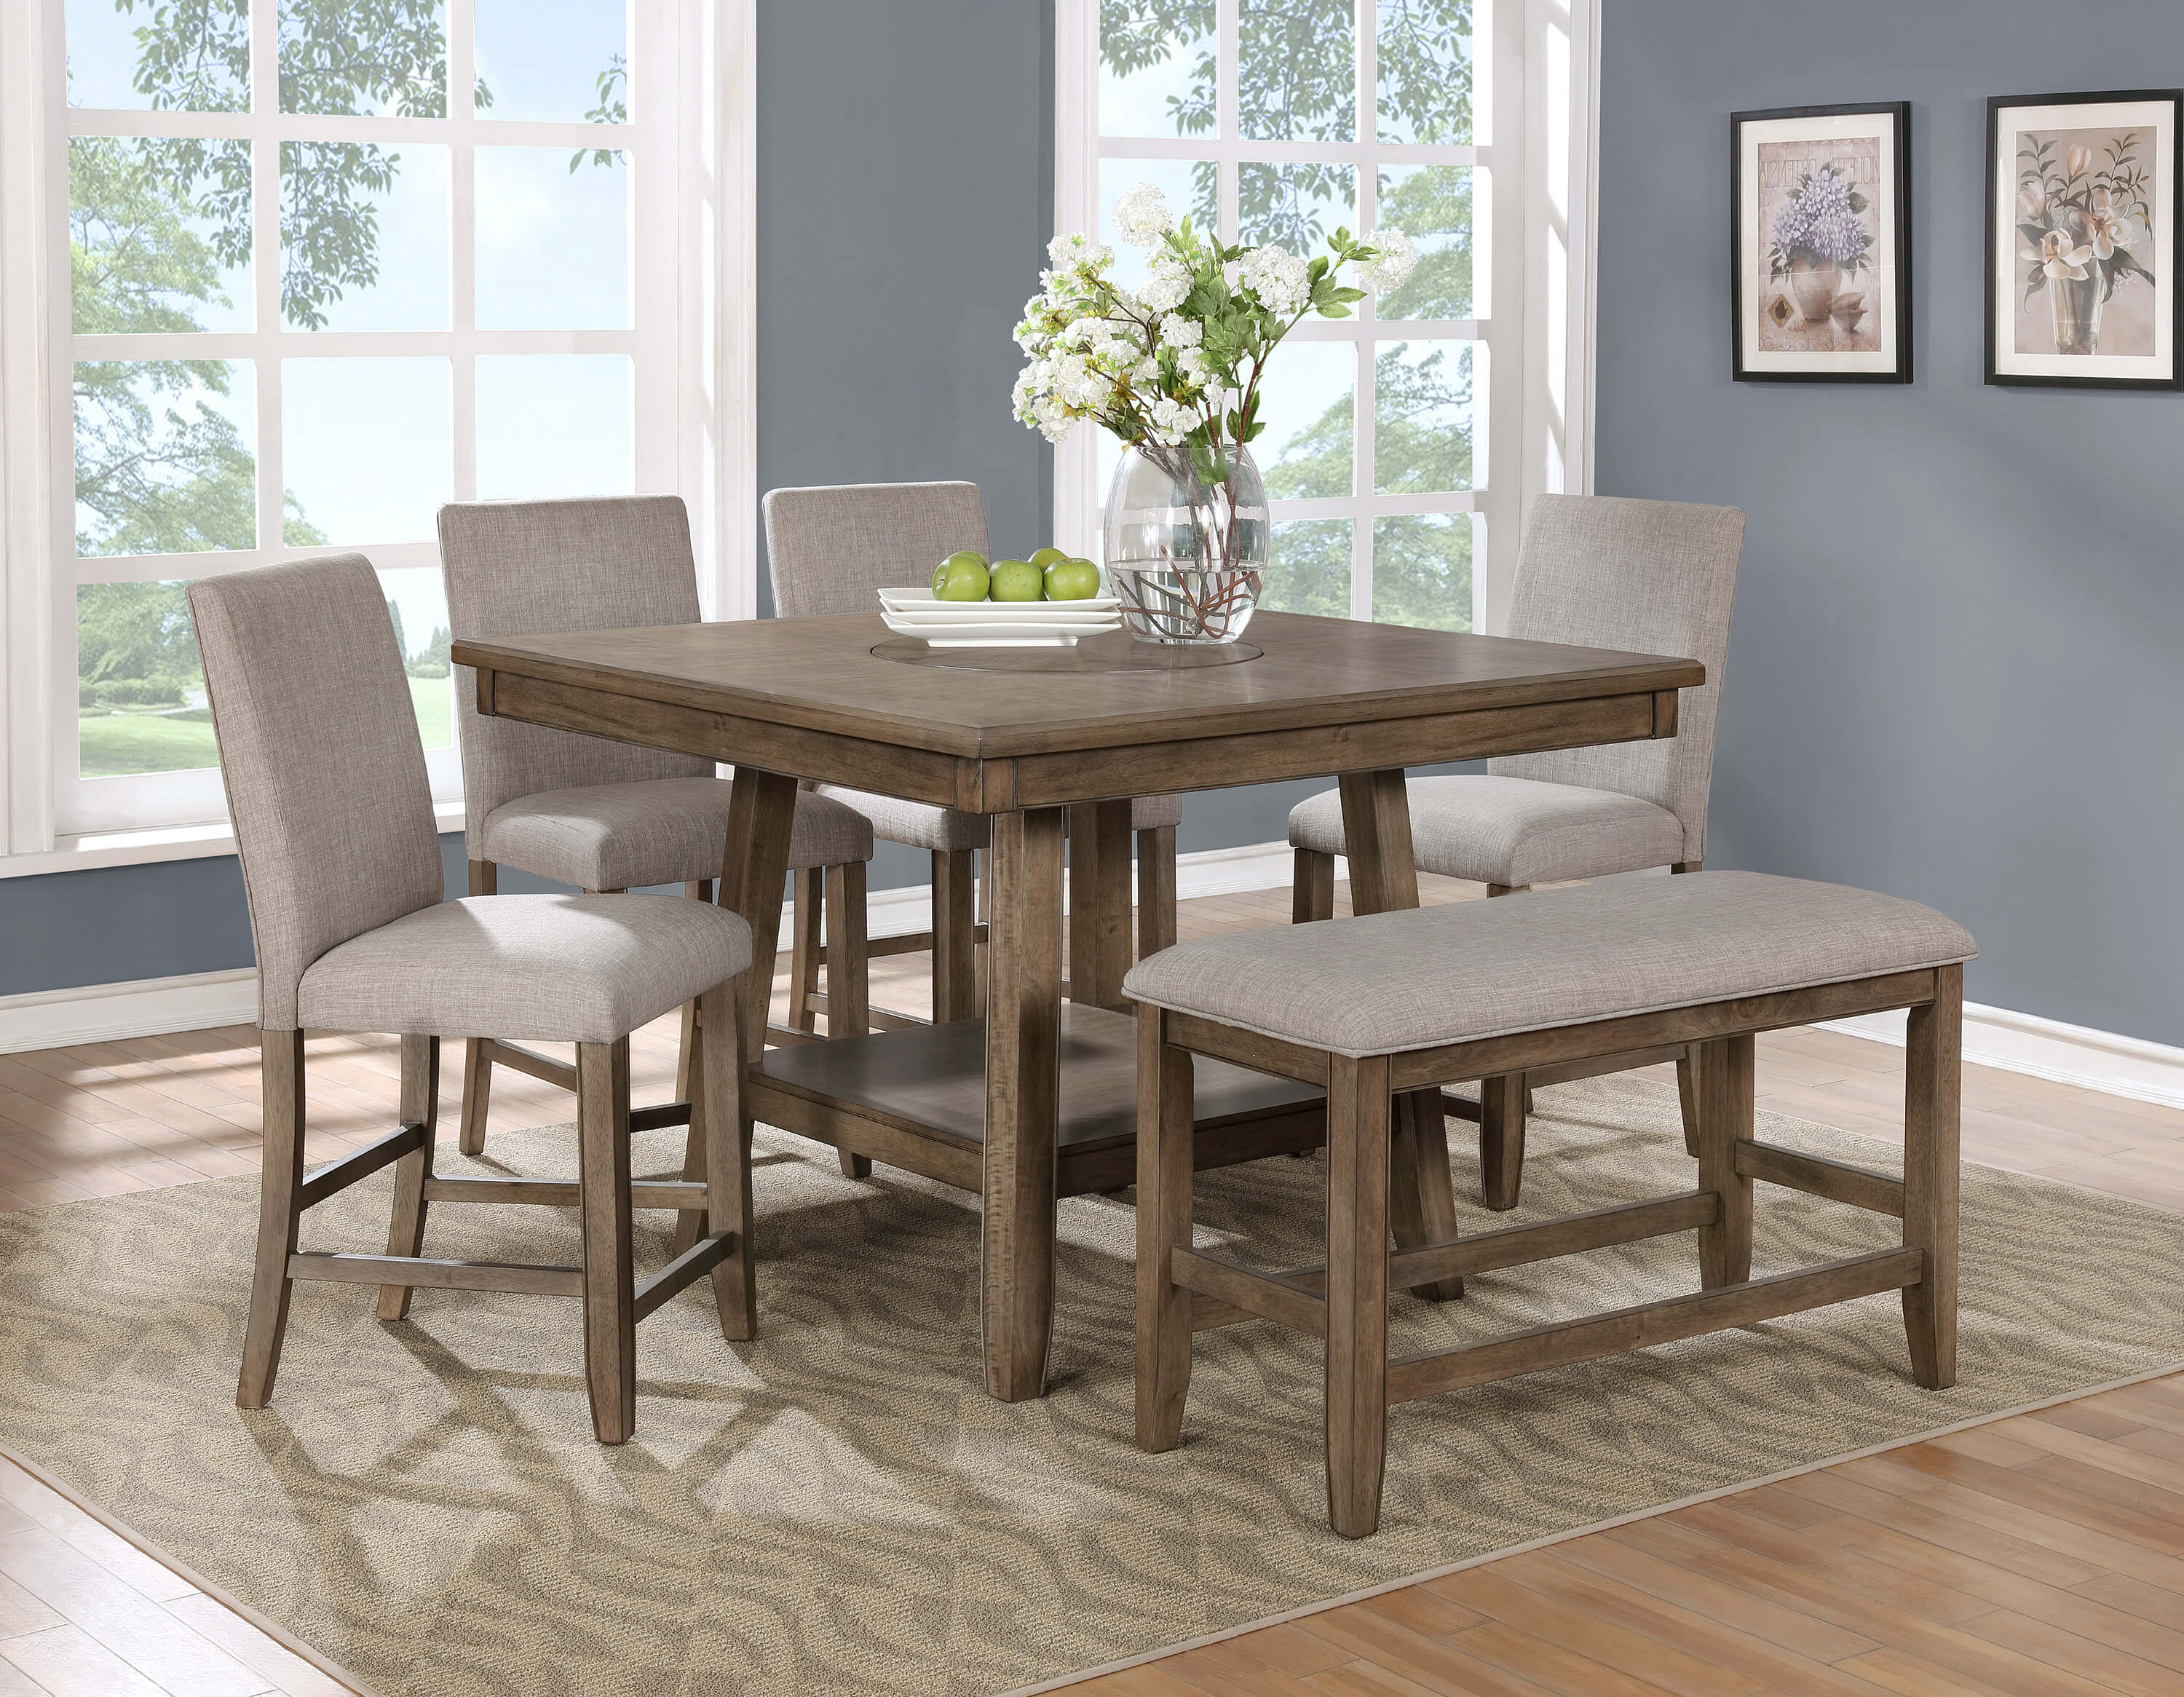 Counter Height Dining Sets Urban Furniture Outlet Delaware